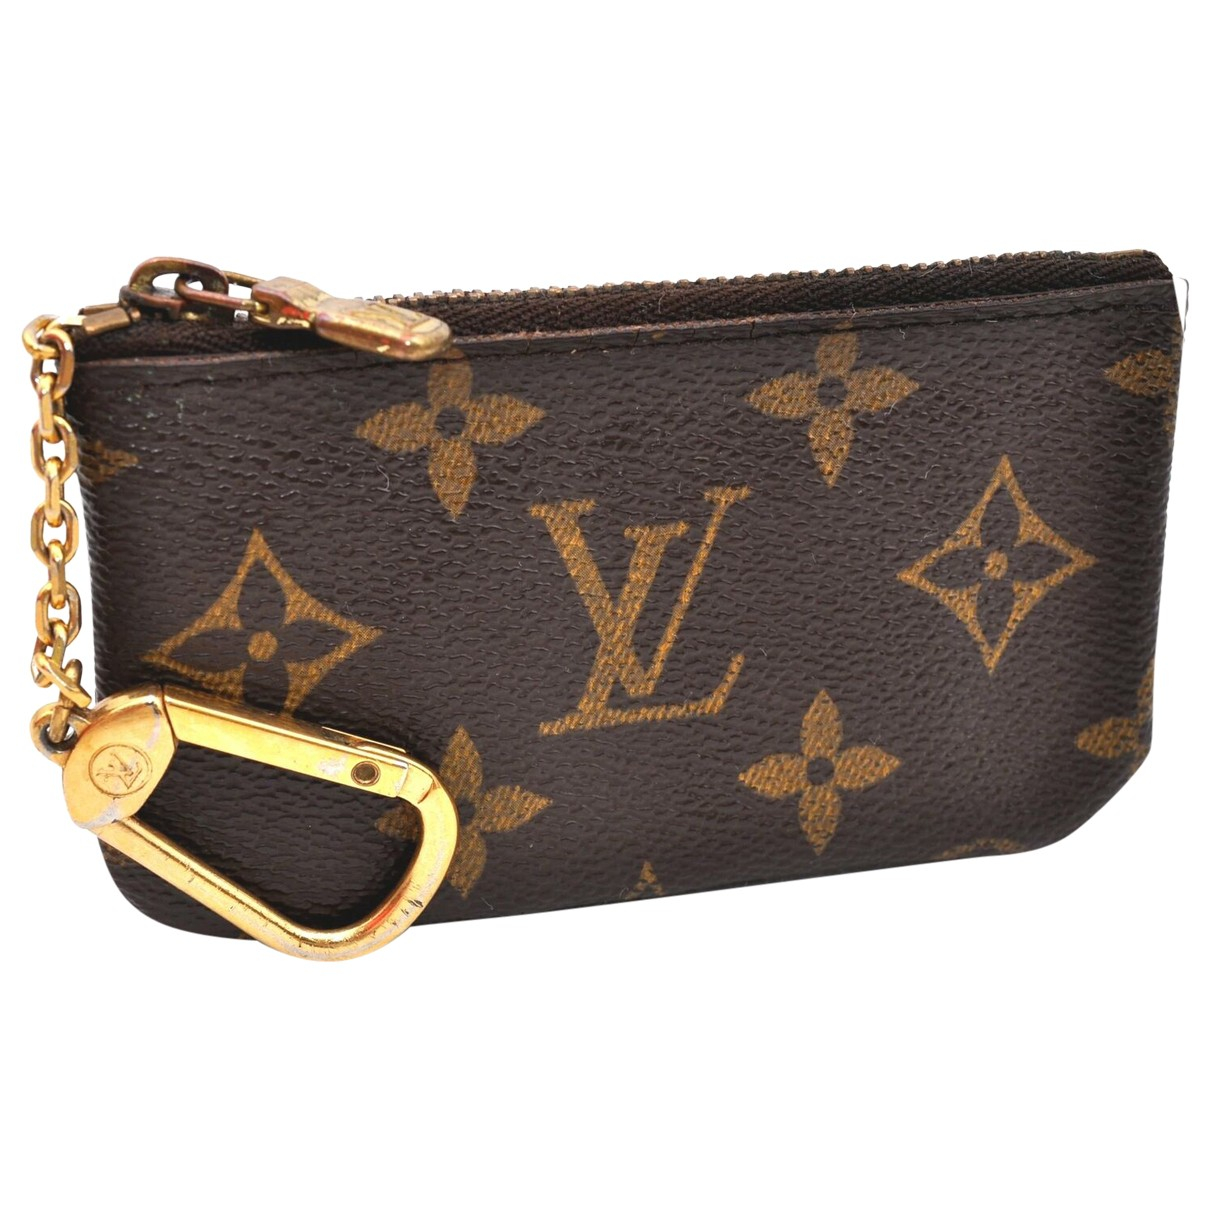 Louis Vuitton \N Brown Cloth handbag for Women \N